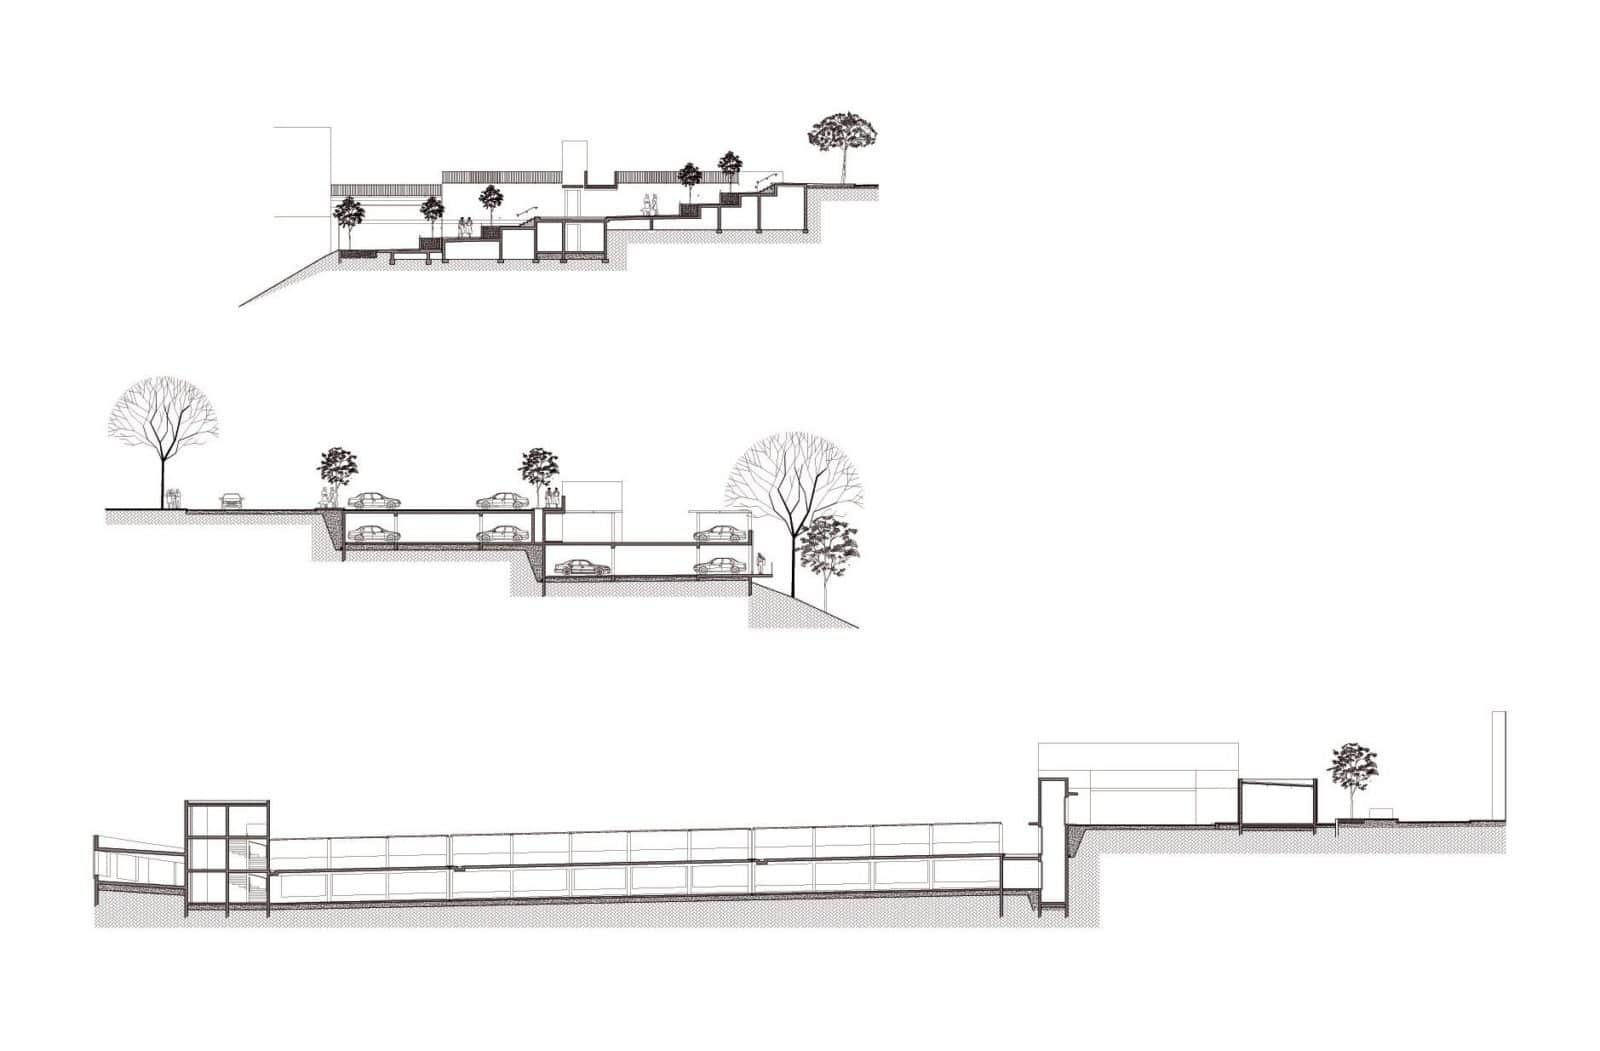 N+B-Architectes-Carros-parking-5